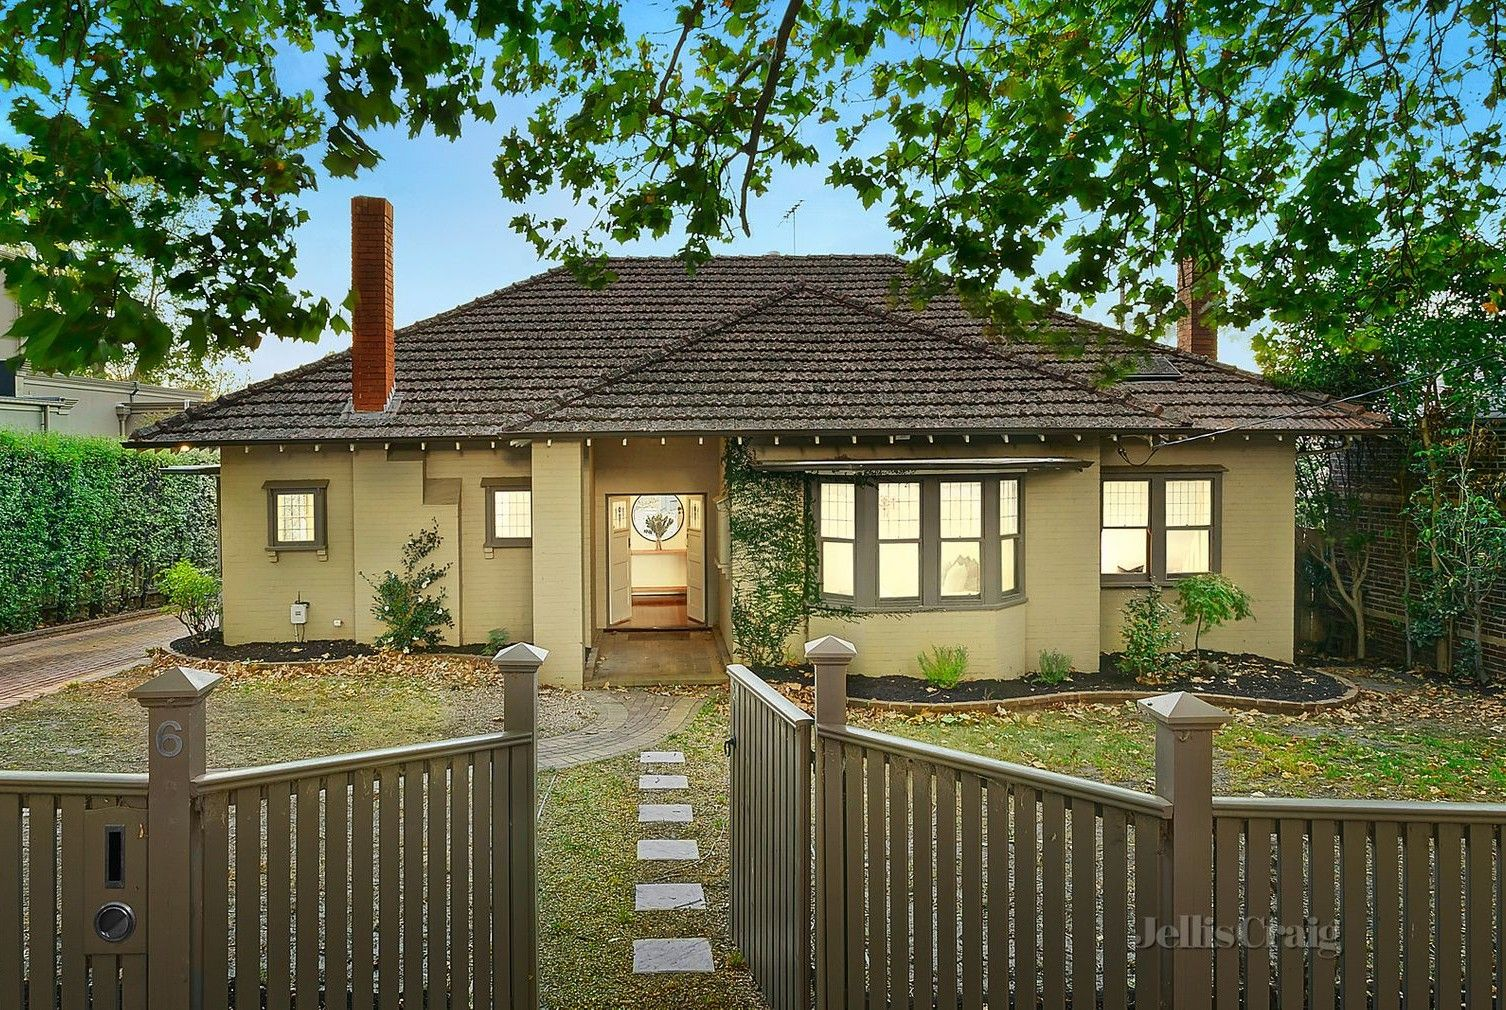 6 Victoria Avenue, Canterbury VIC 3126 - House For Rent - $780.00 ...